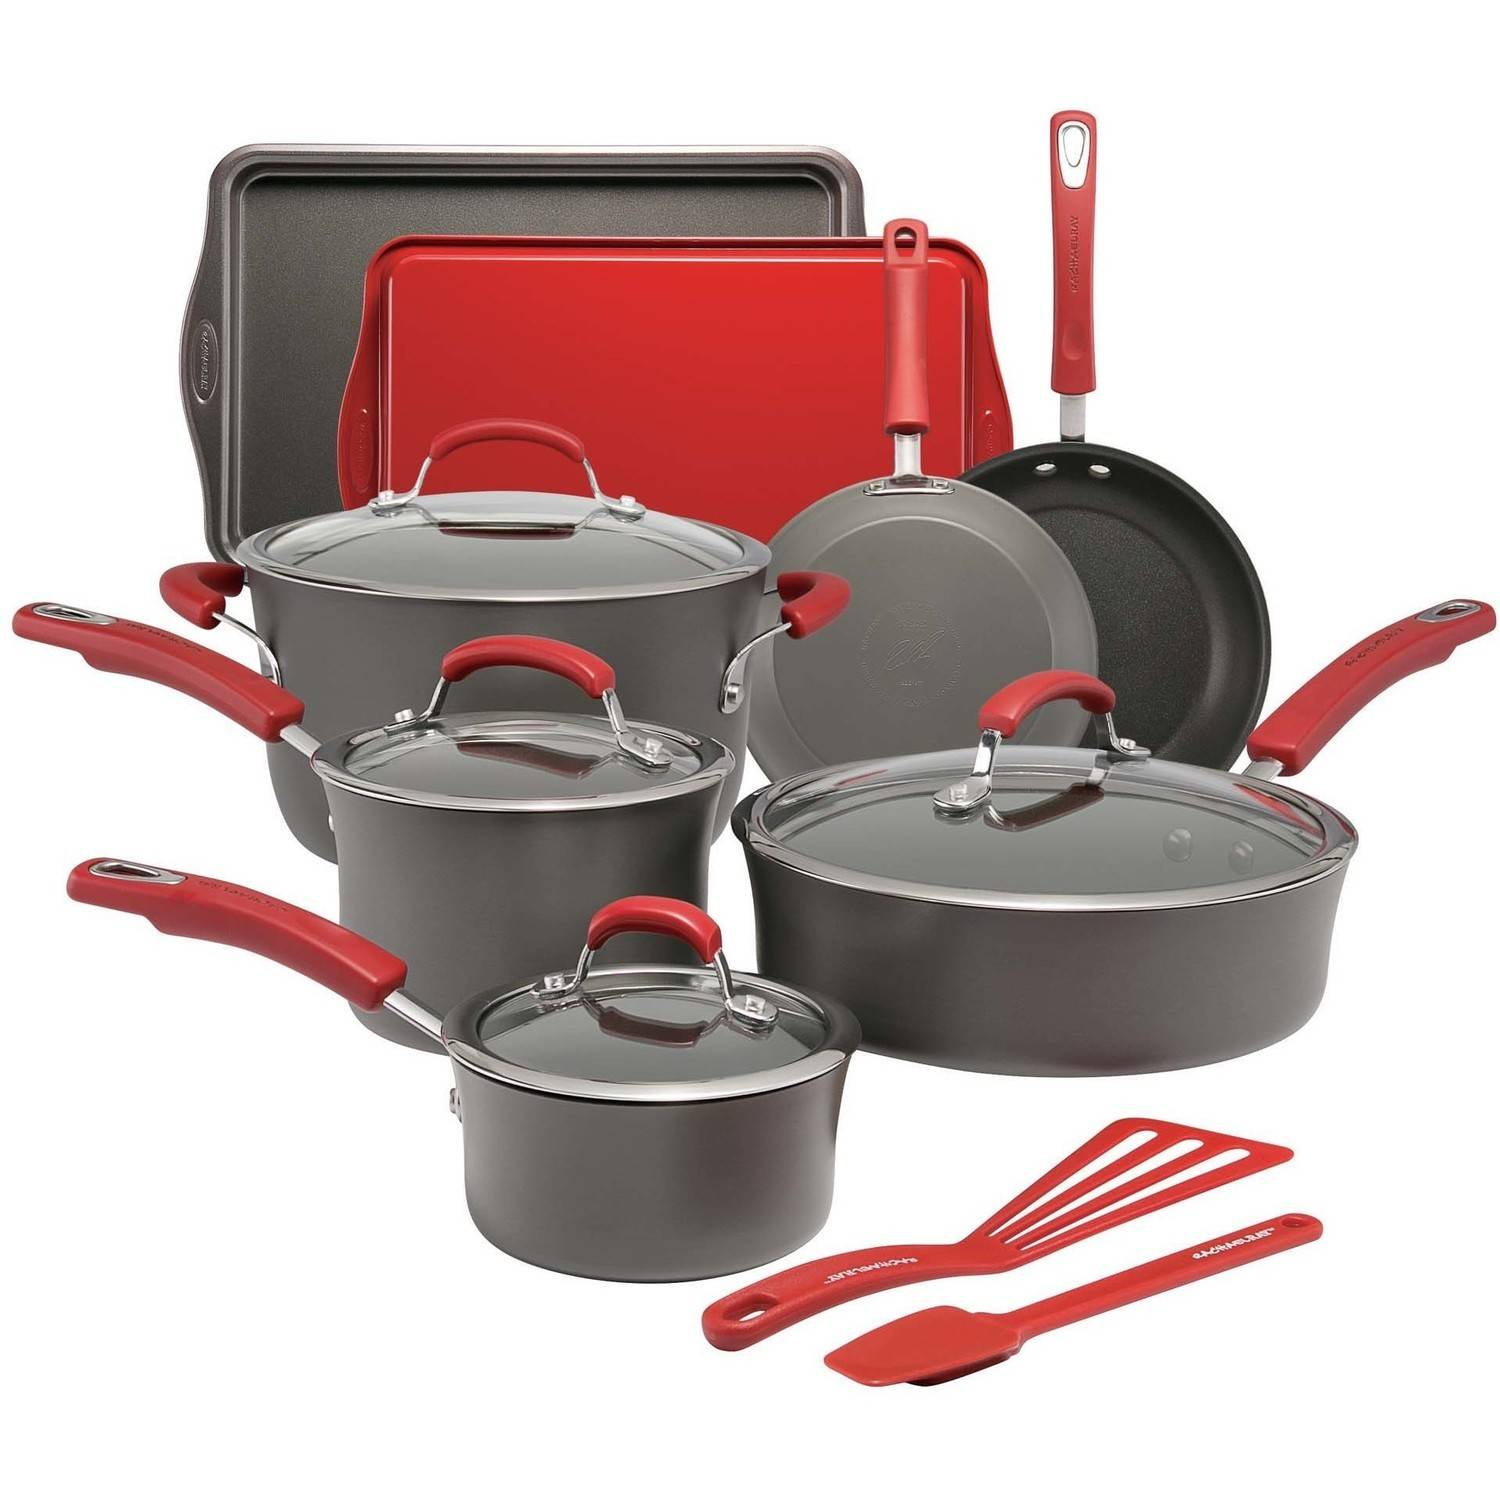 Rachael Ray Hard-Anodized Nonstick 14-Piece Cookware Set, Grey with Red Handles